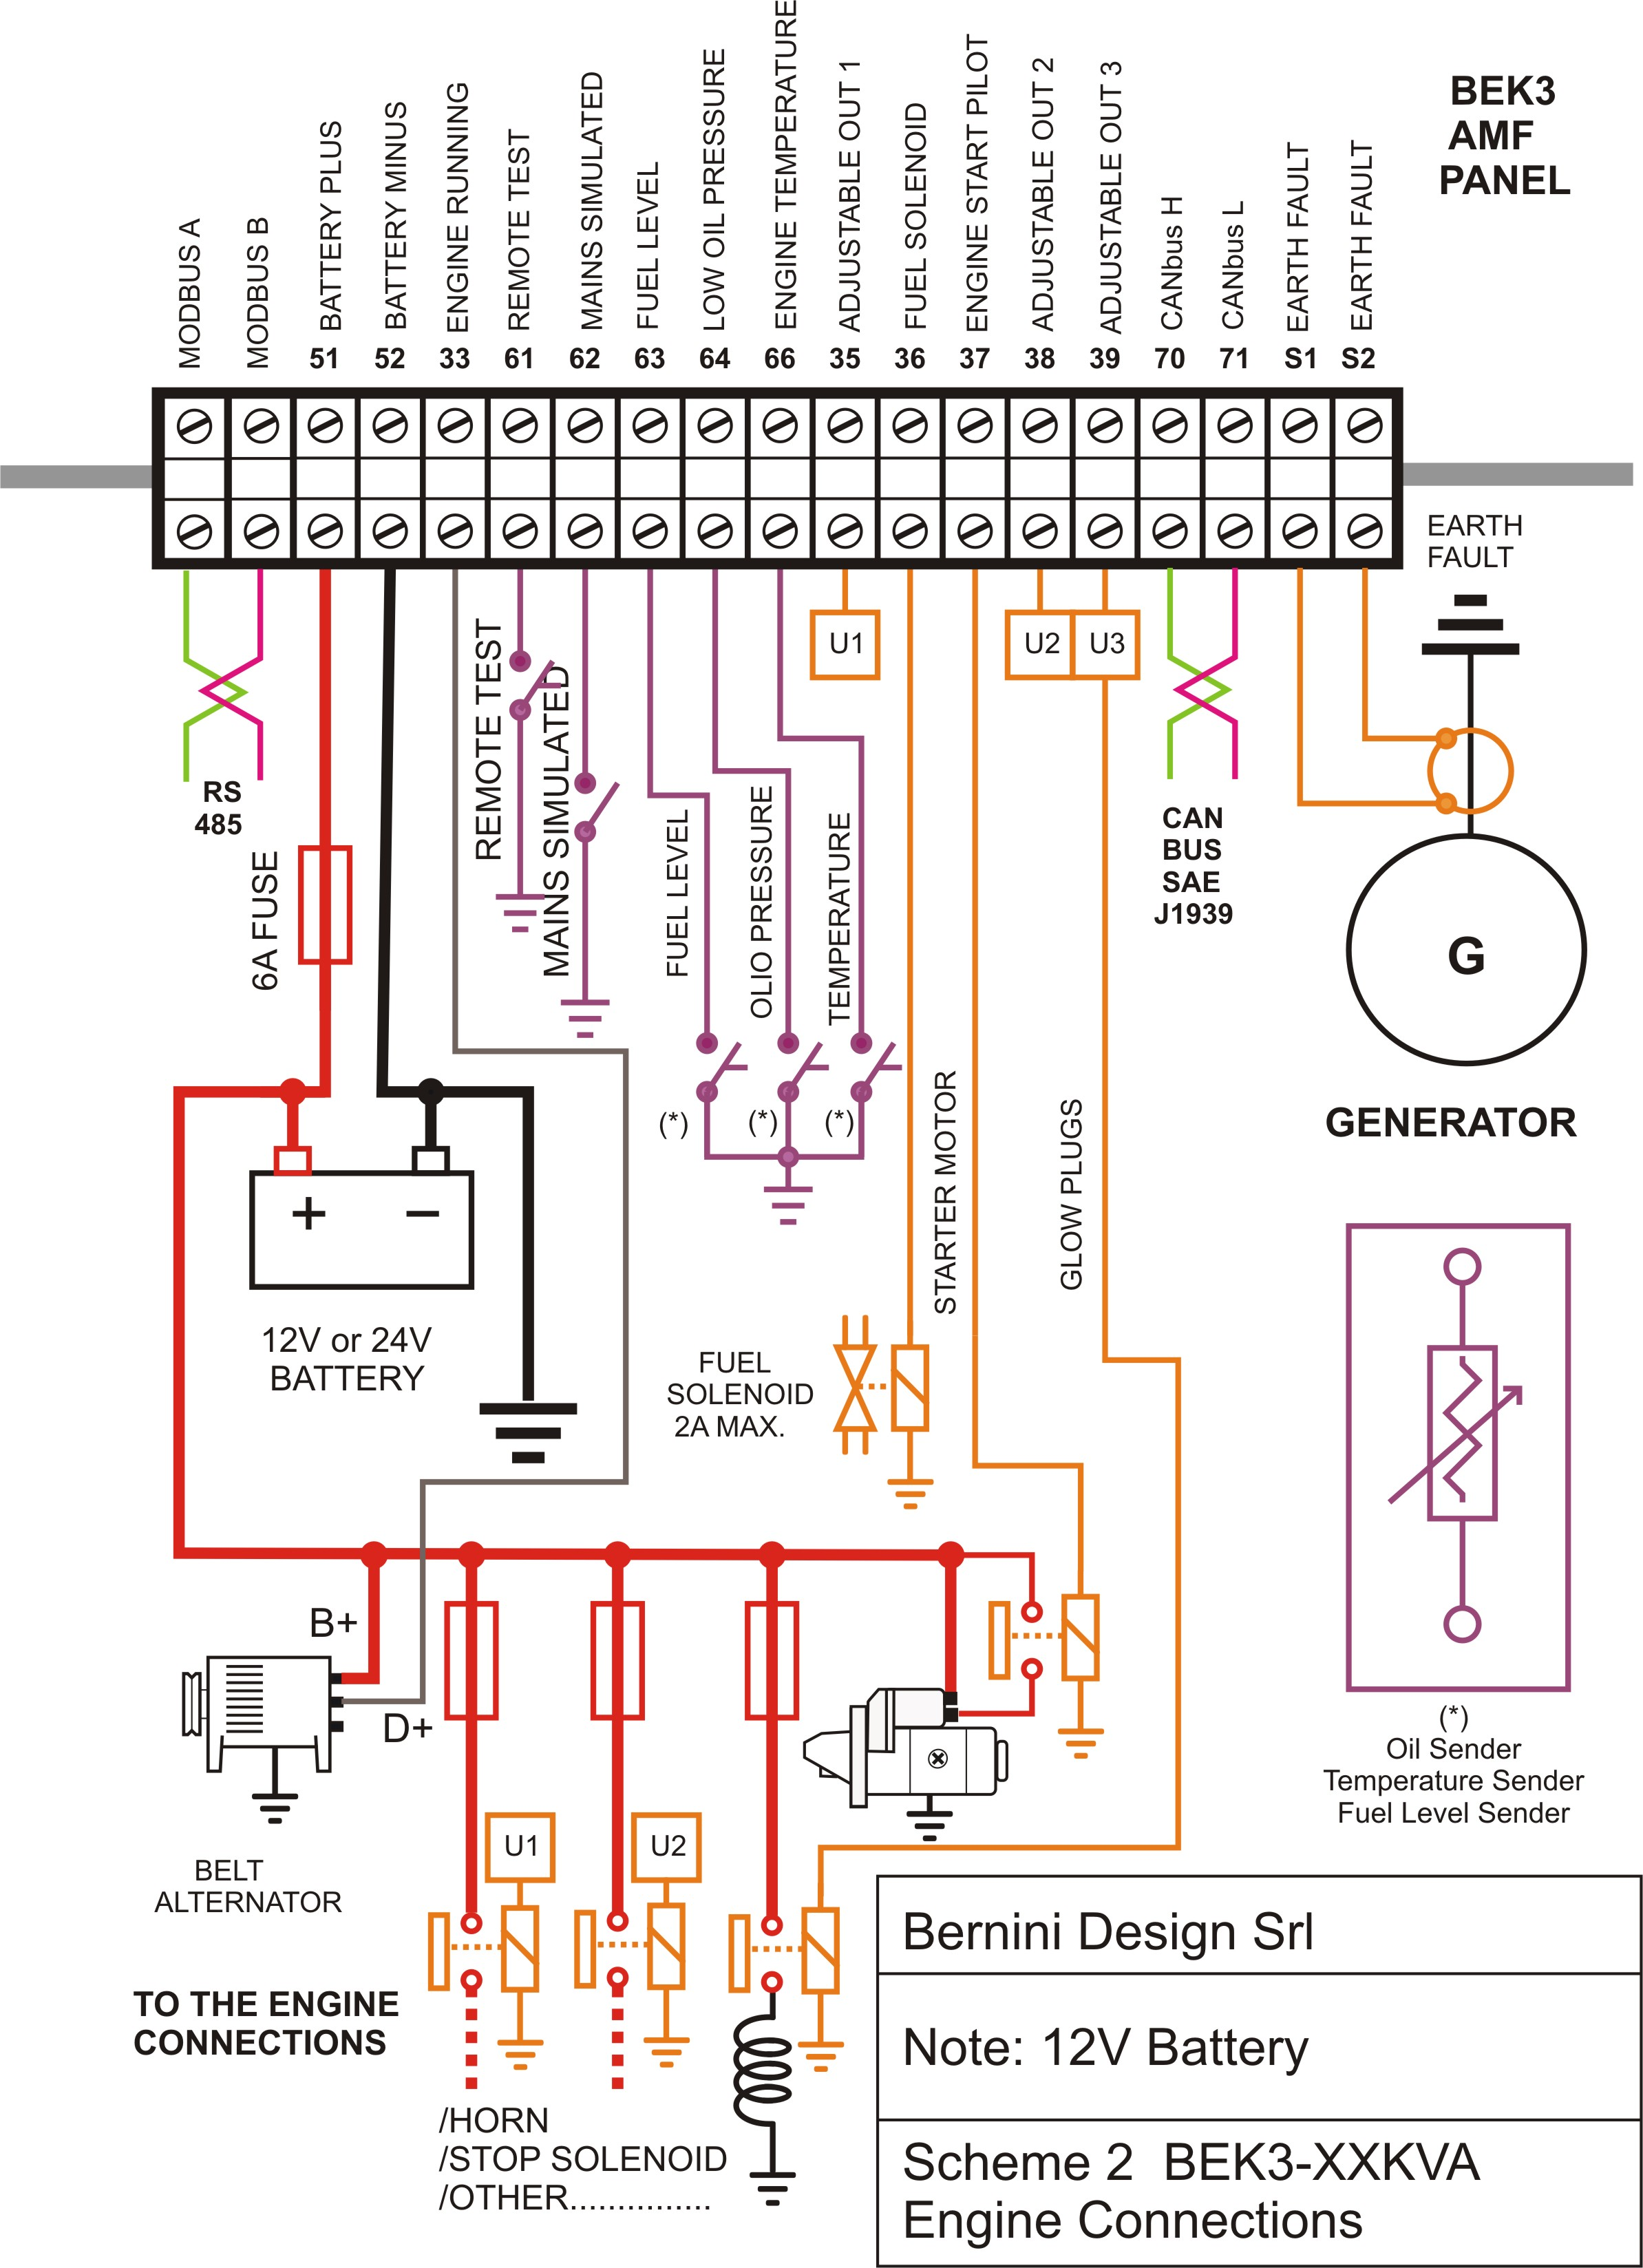 Circuit Diagram Wire Engine Schematic Buzzer Great Installation Of Electromagnetic Relay In A Box Wiring Pdf Todays Rh 1 15 9 1813weddingbarn Com Piezo Boy Scouts